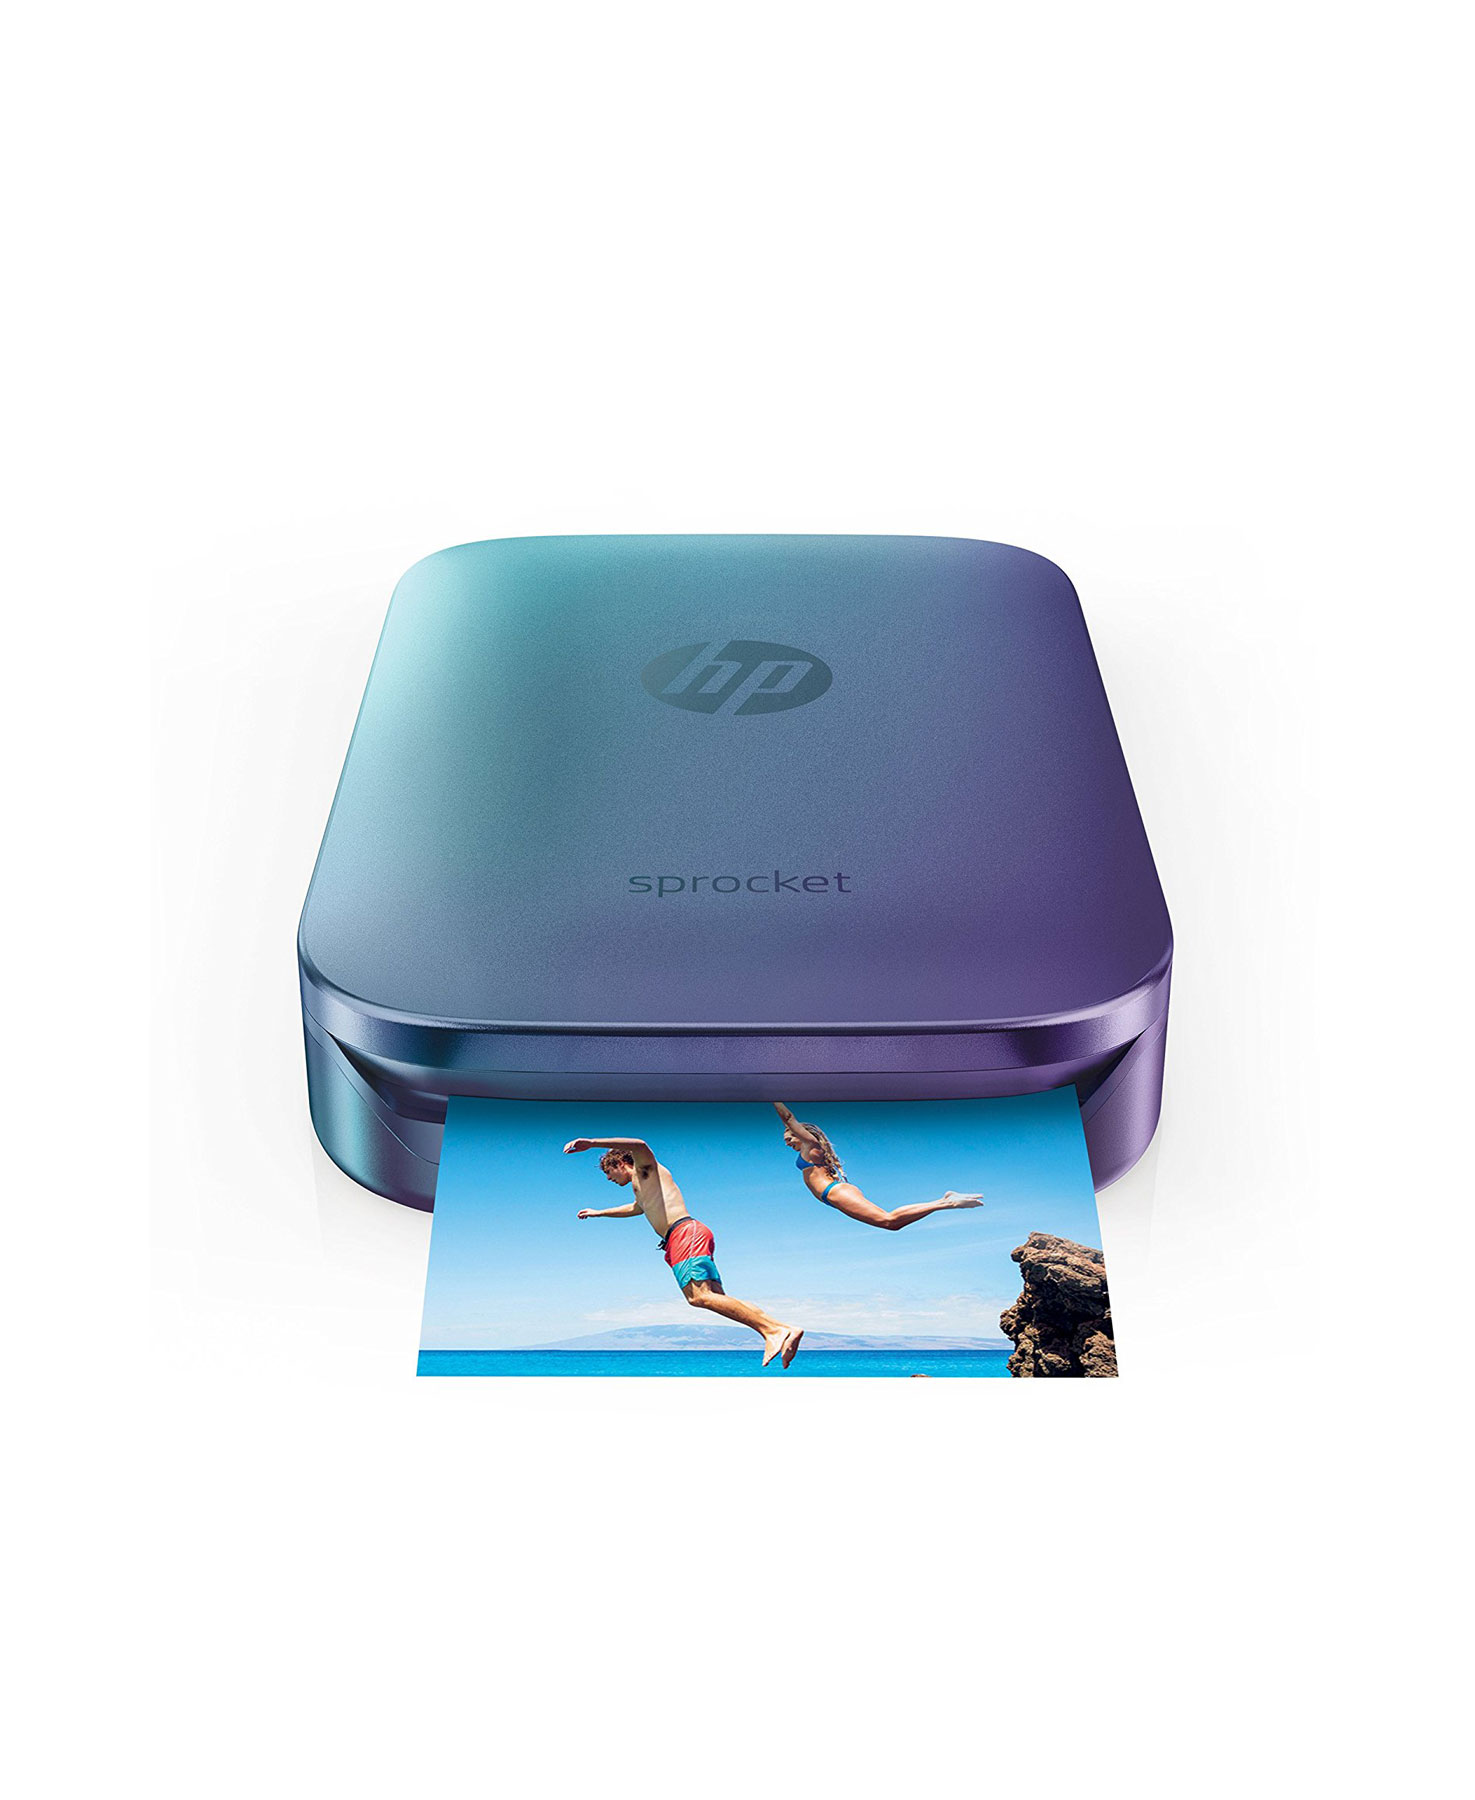 HP Blue Sprocket Portable Photo Printer